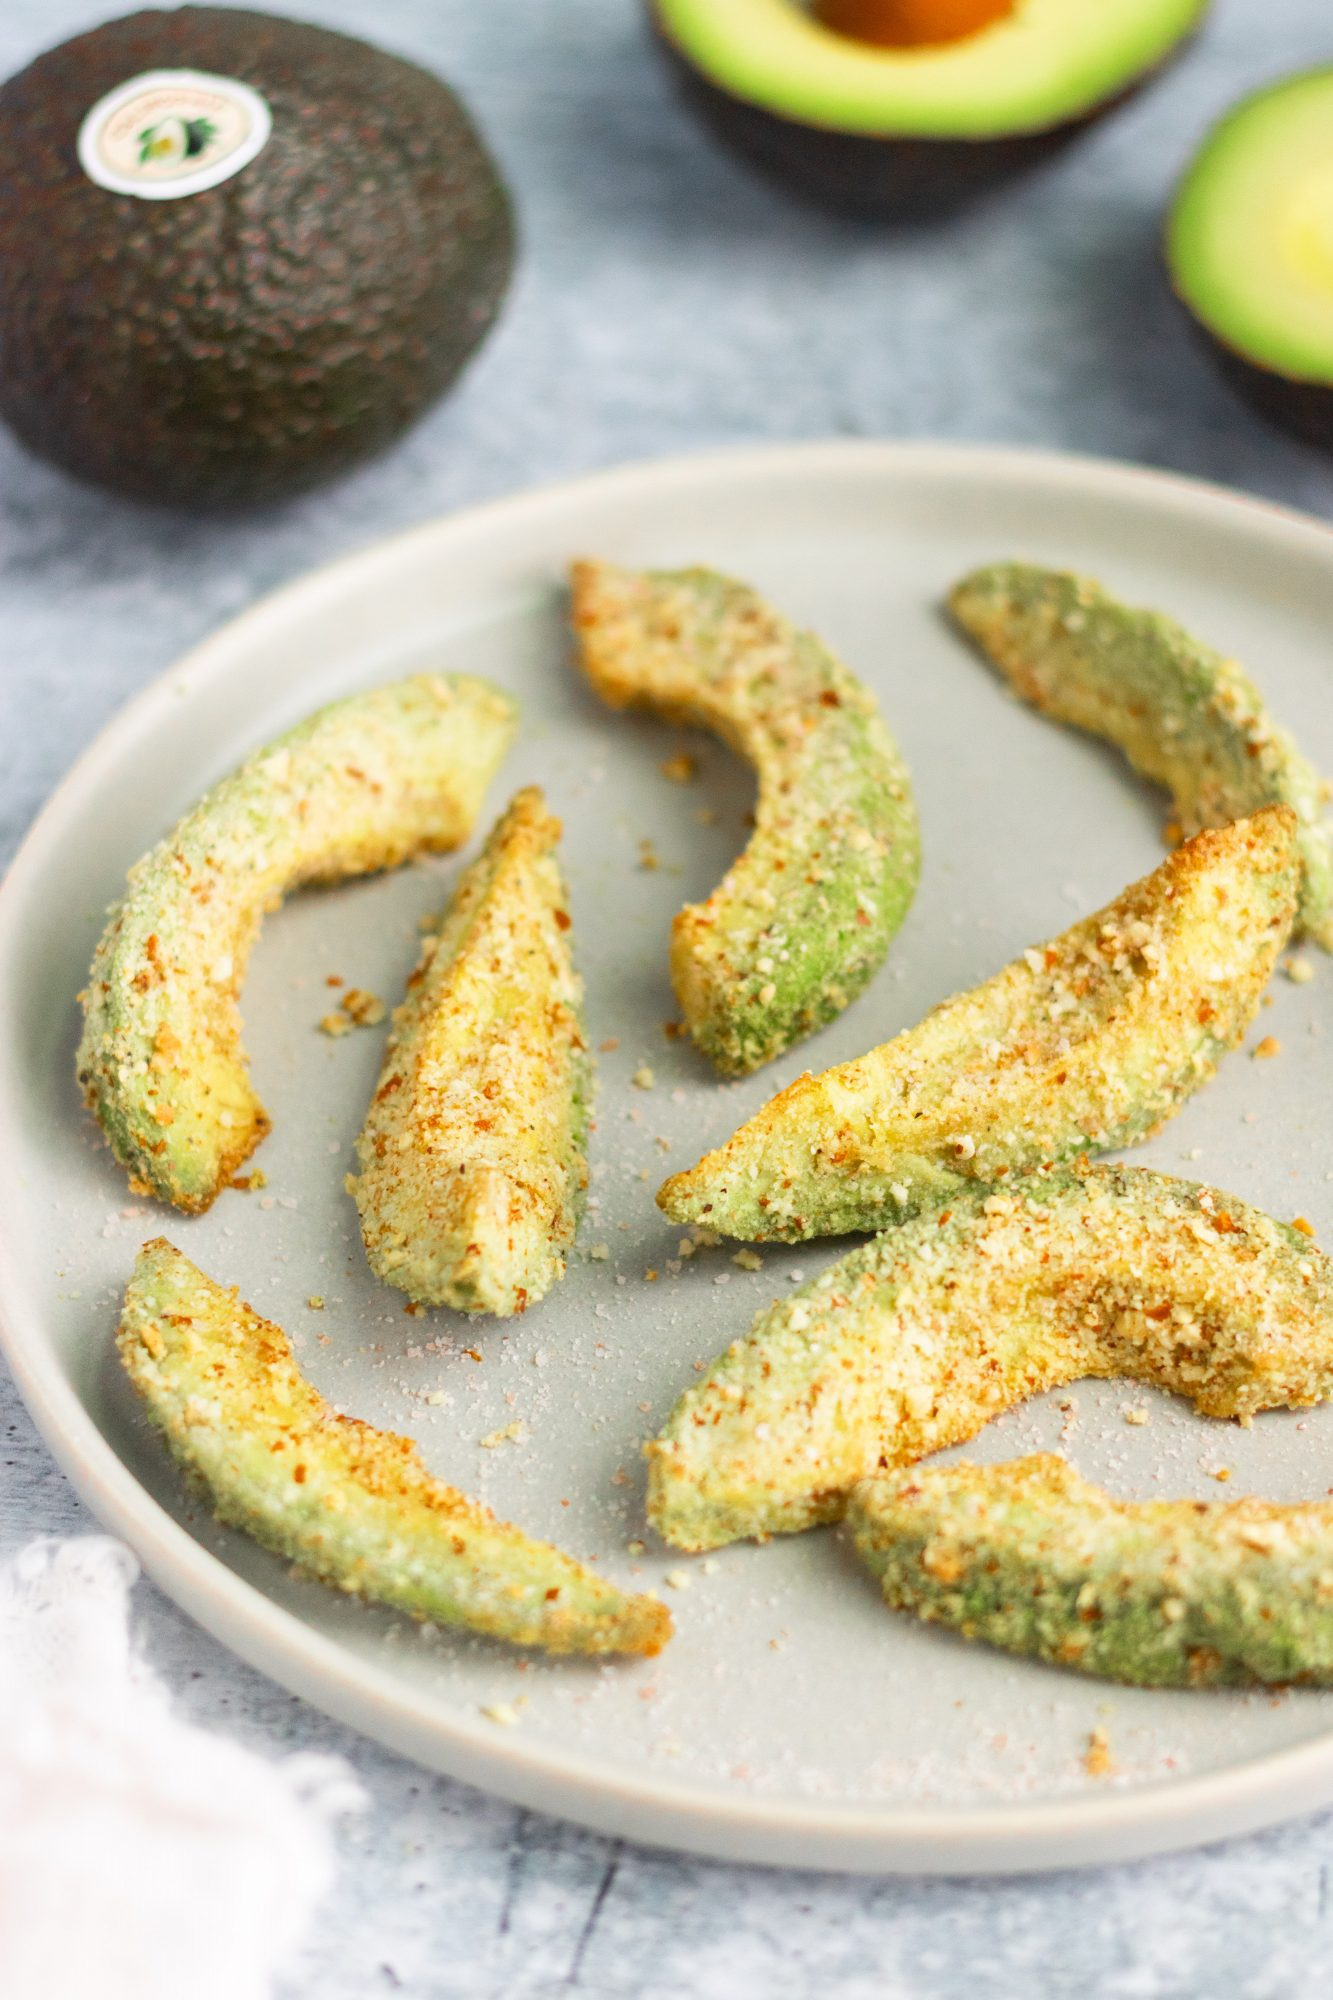 Gluten-Free Avocado Fries